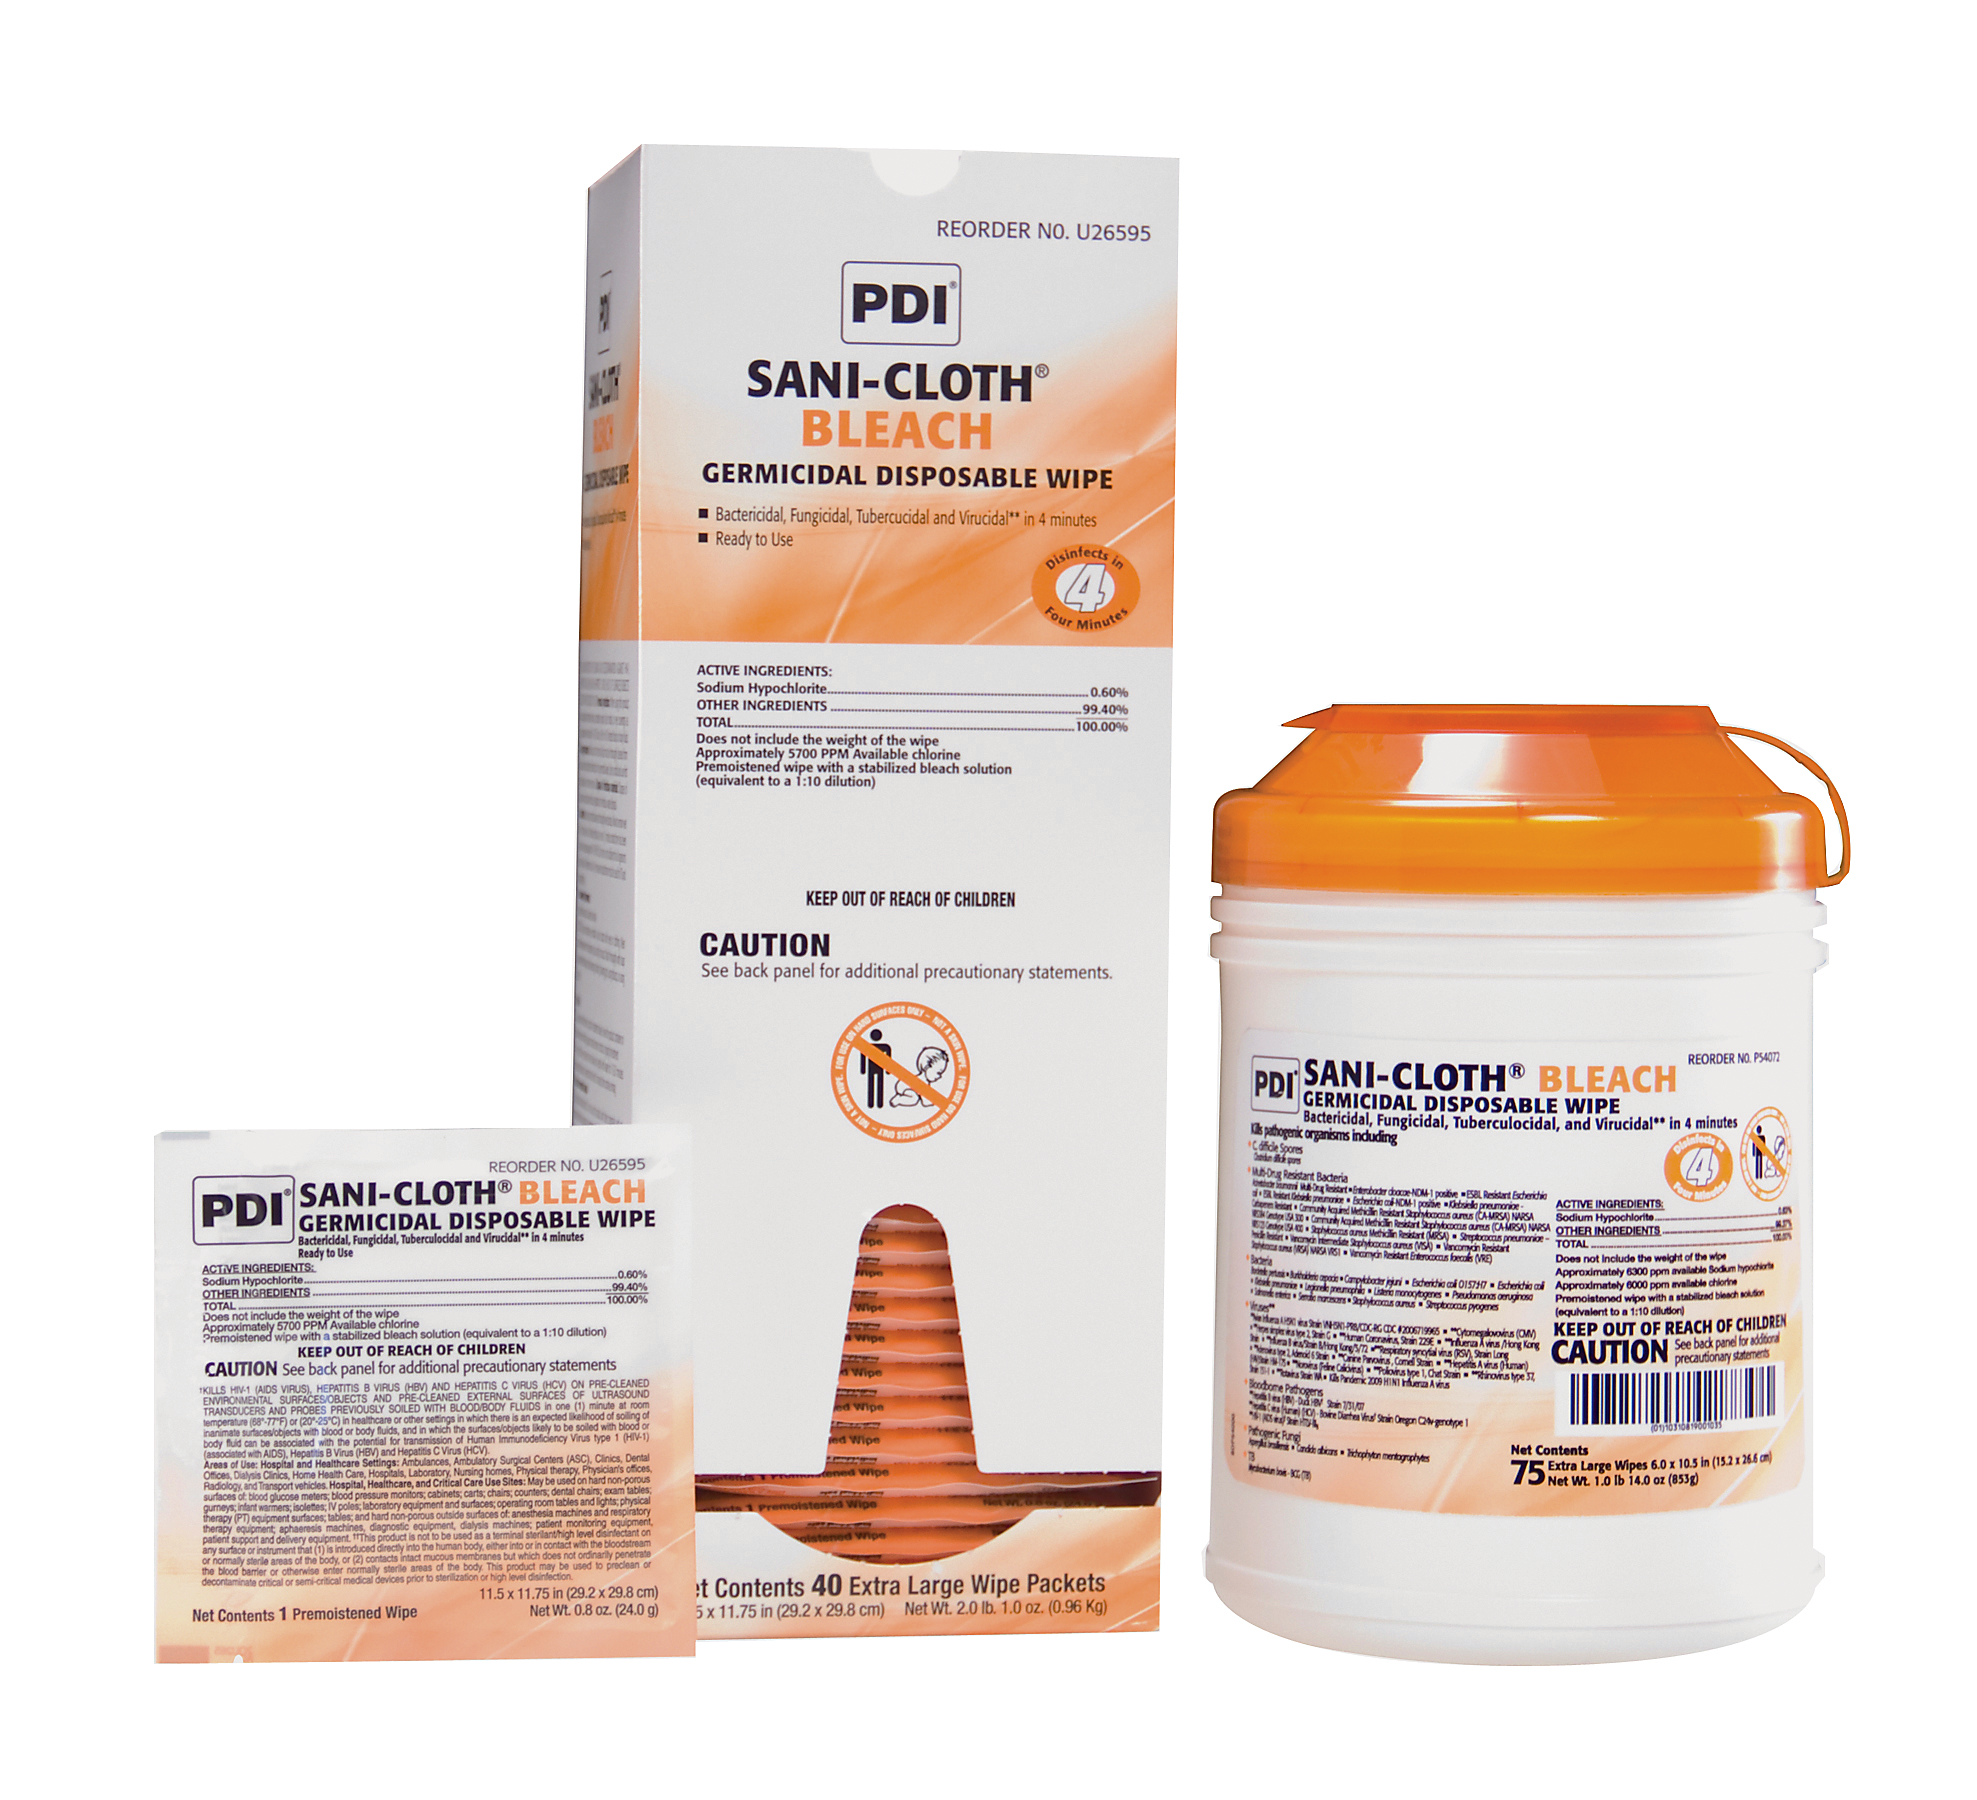 Sani-Cloth Bleach Germicidal Disposable Wipes